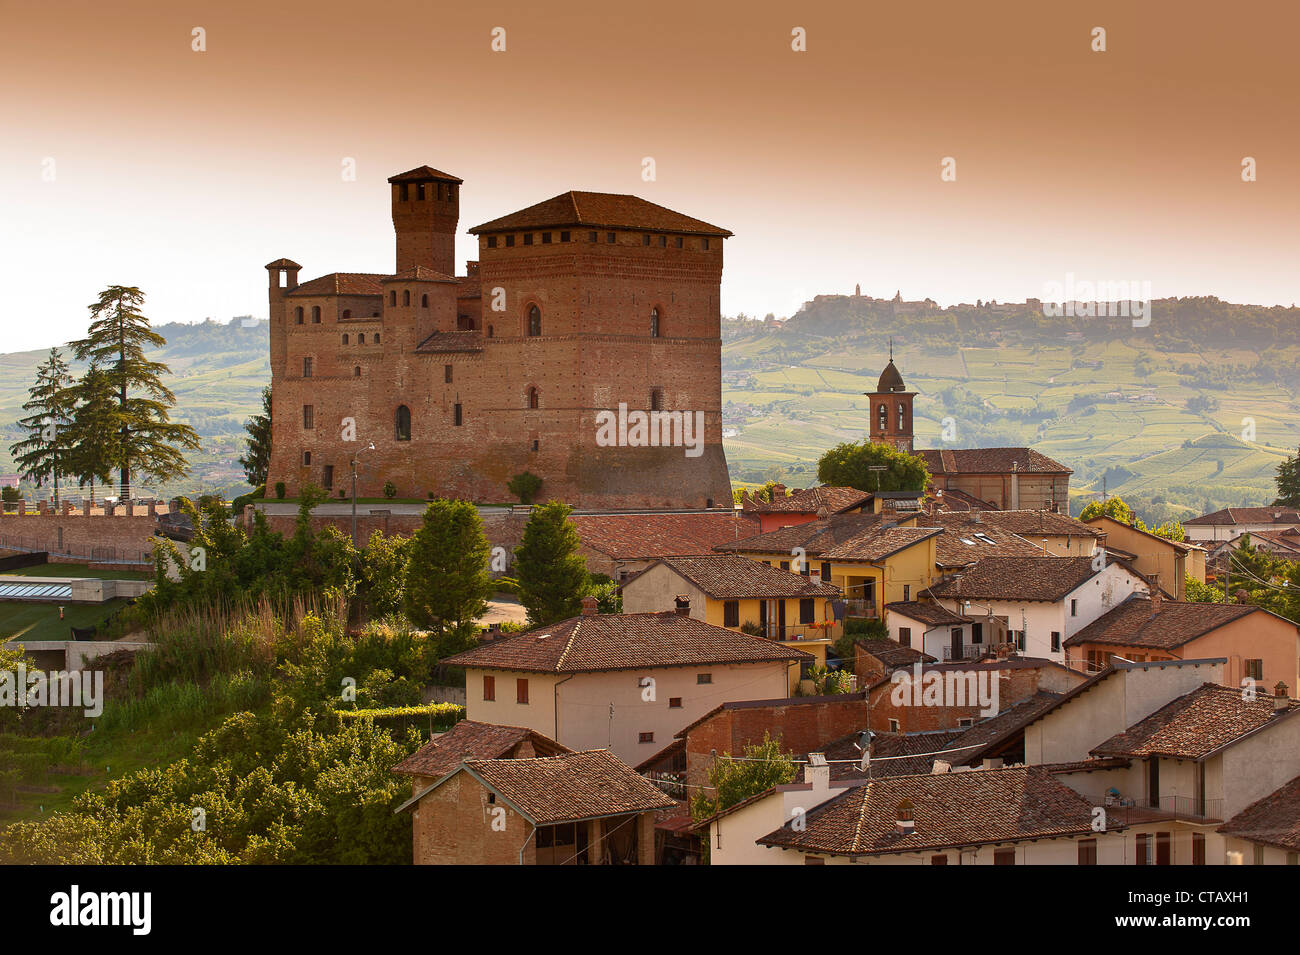 Europe Italy Piedmont Langhe Grinzane Cavour  The village and  castle - Stock Image